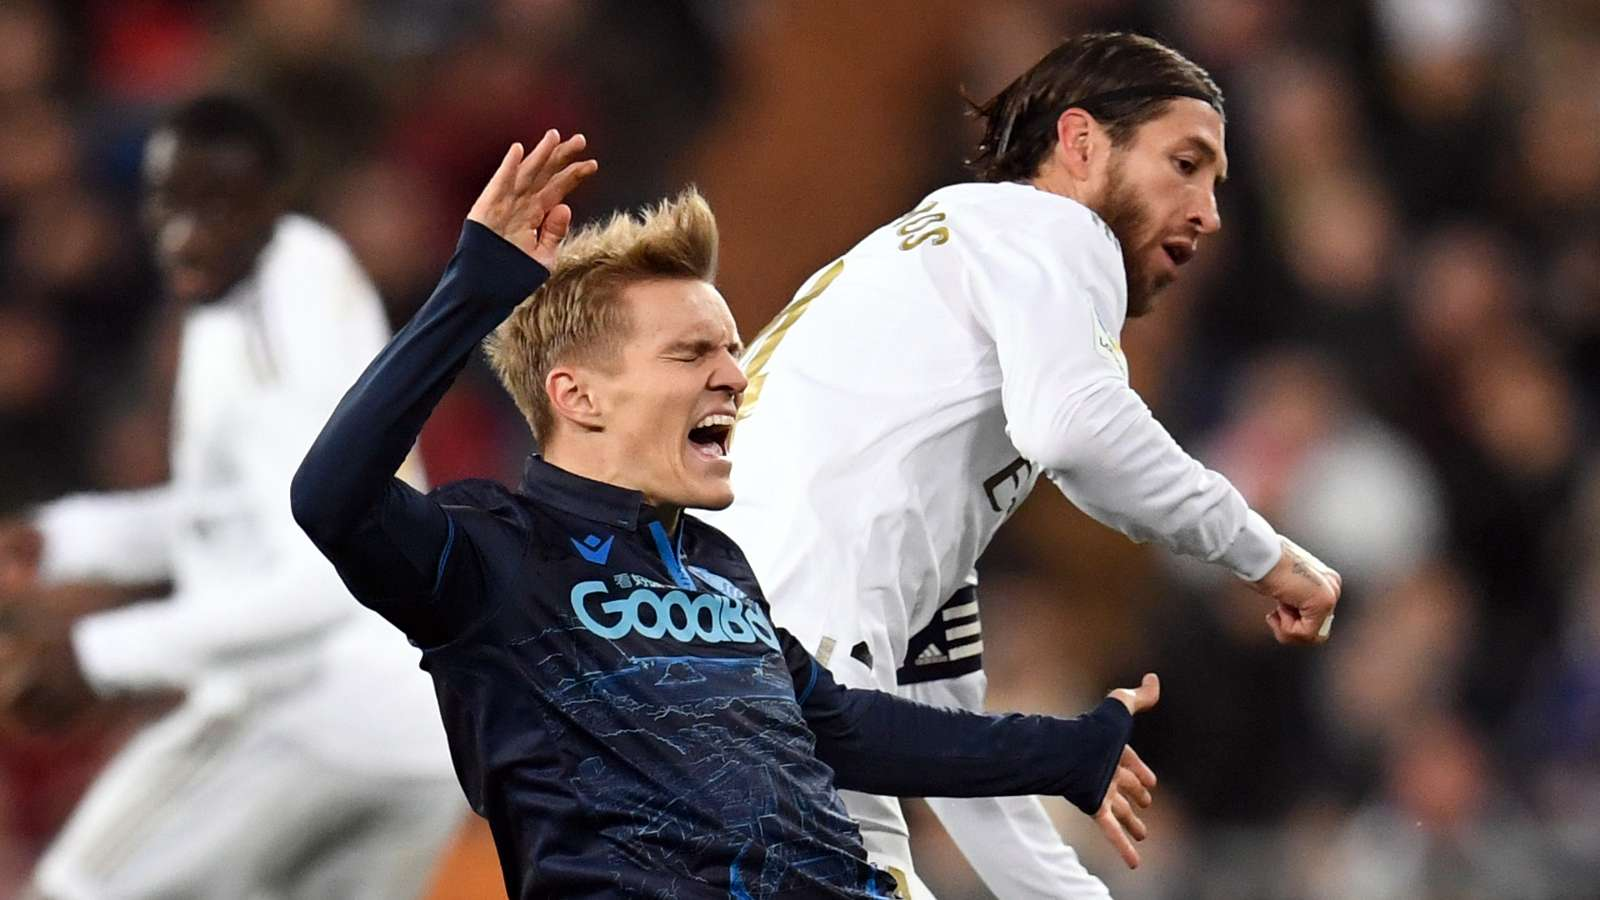 Sociedad coach: Odegaard has resistance to success with Real Madrid